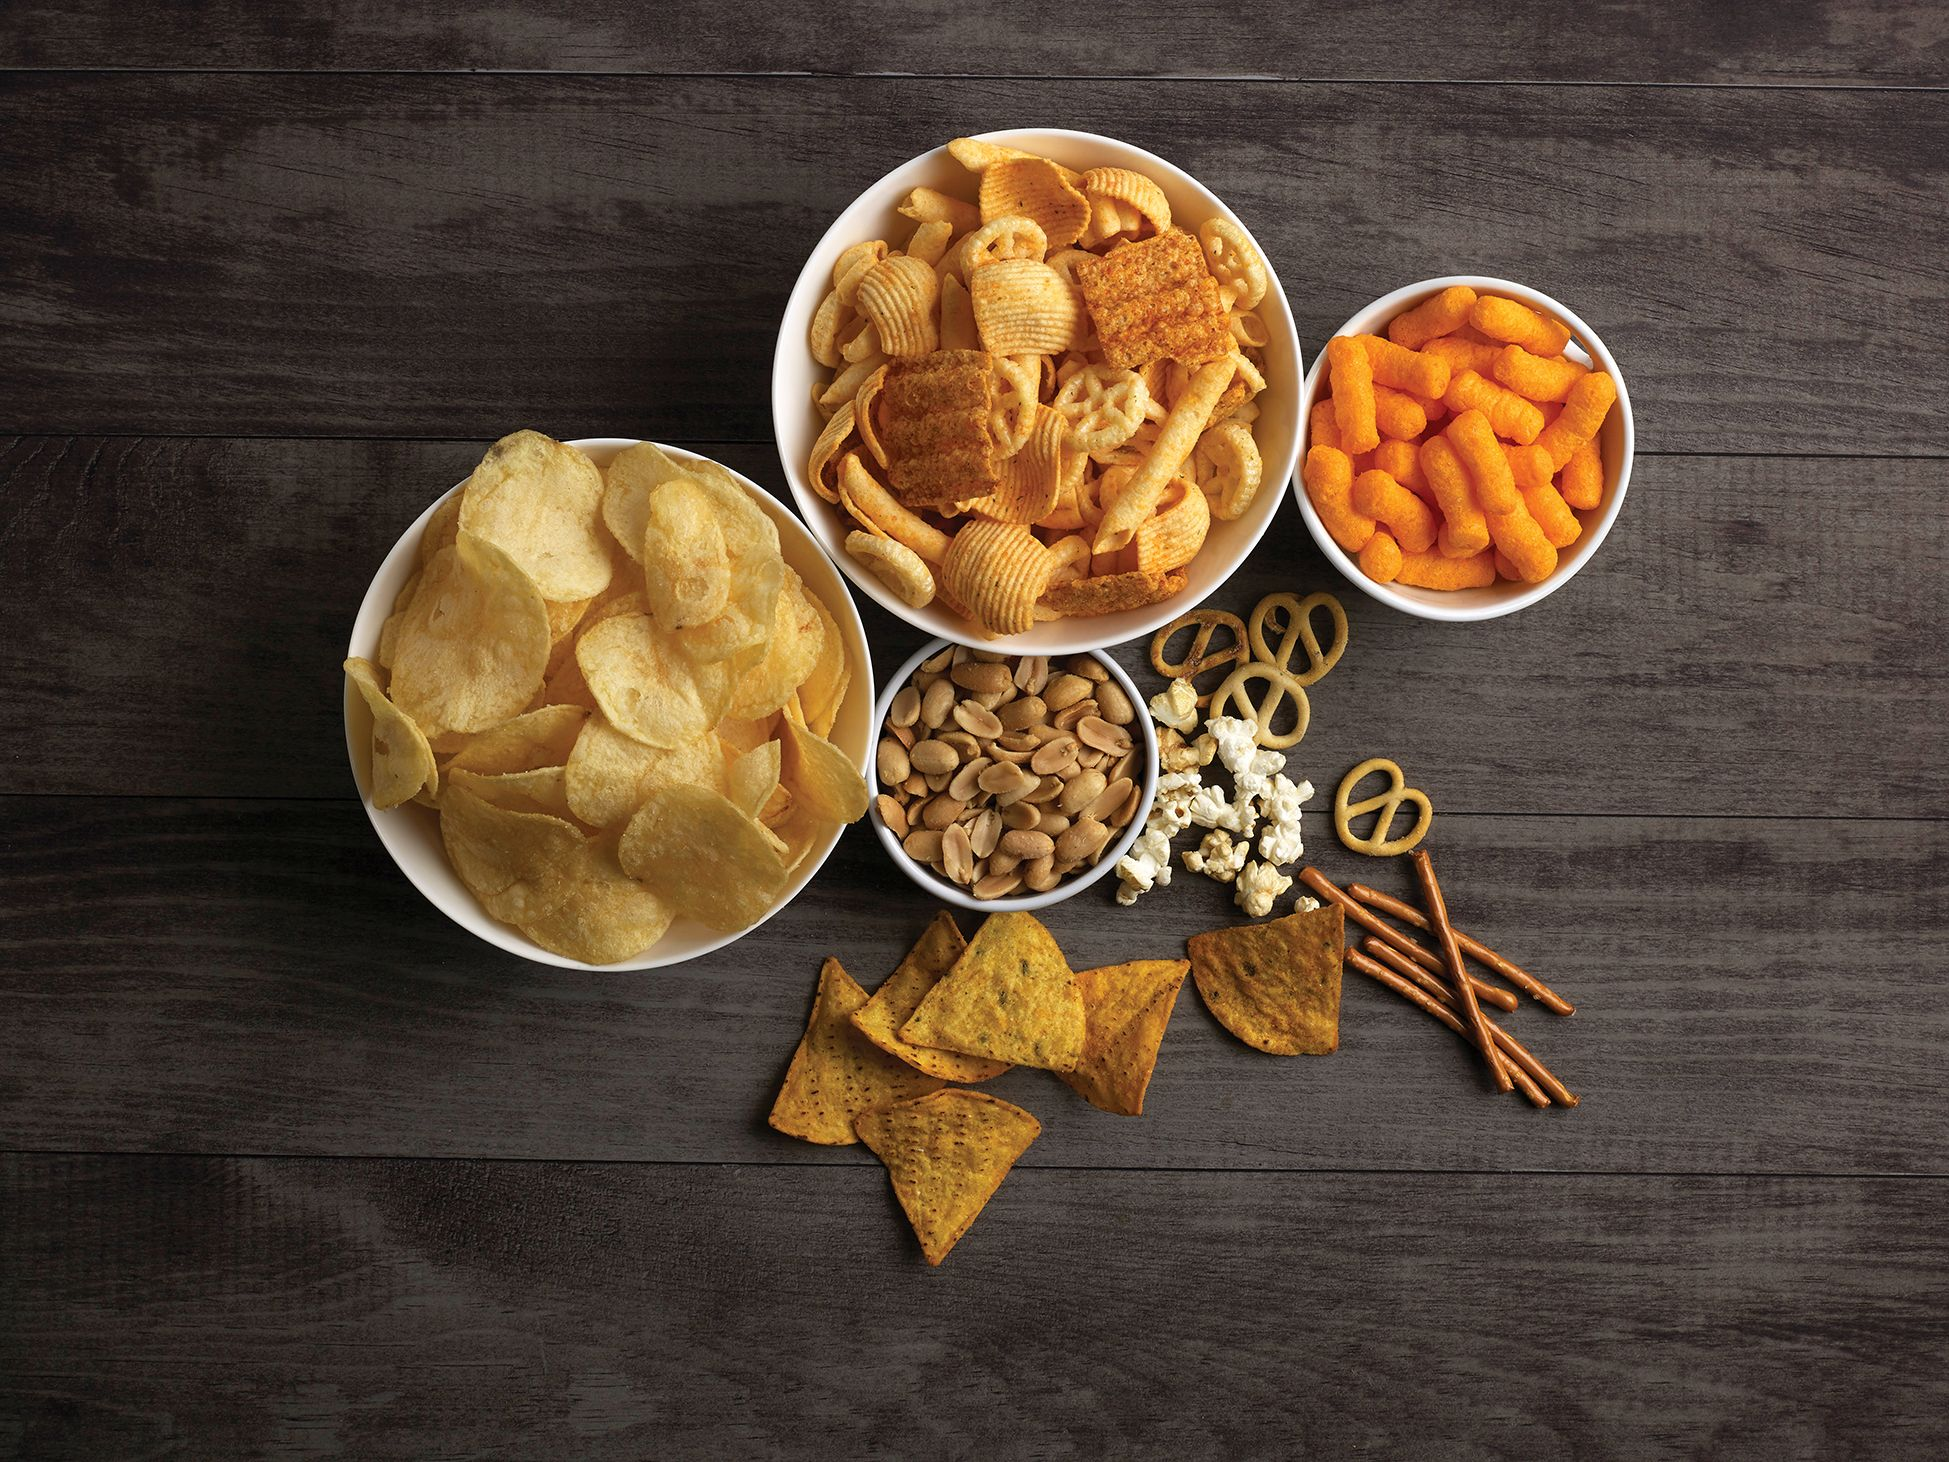 Snack Product Business in growing is the African Market